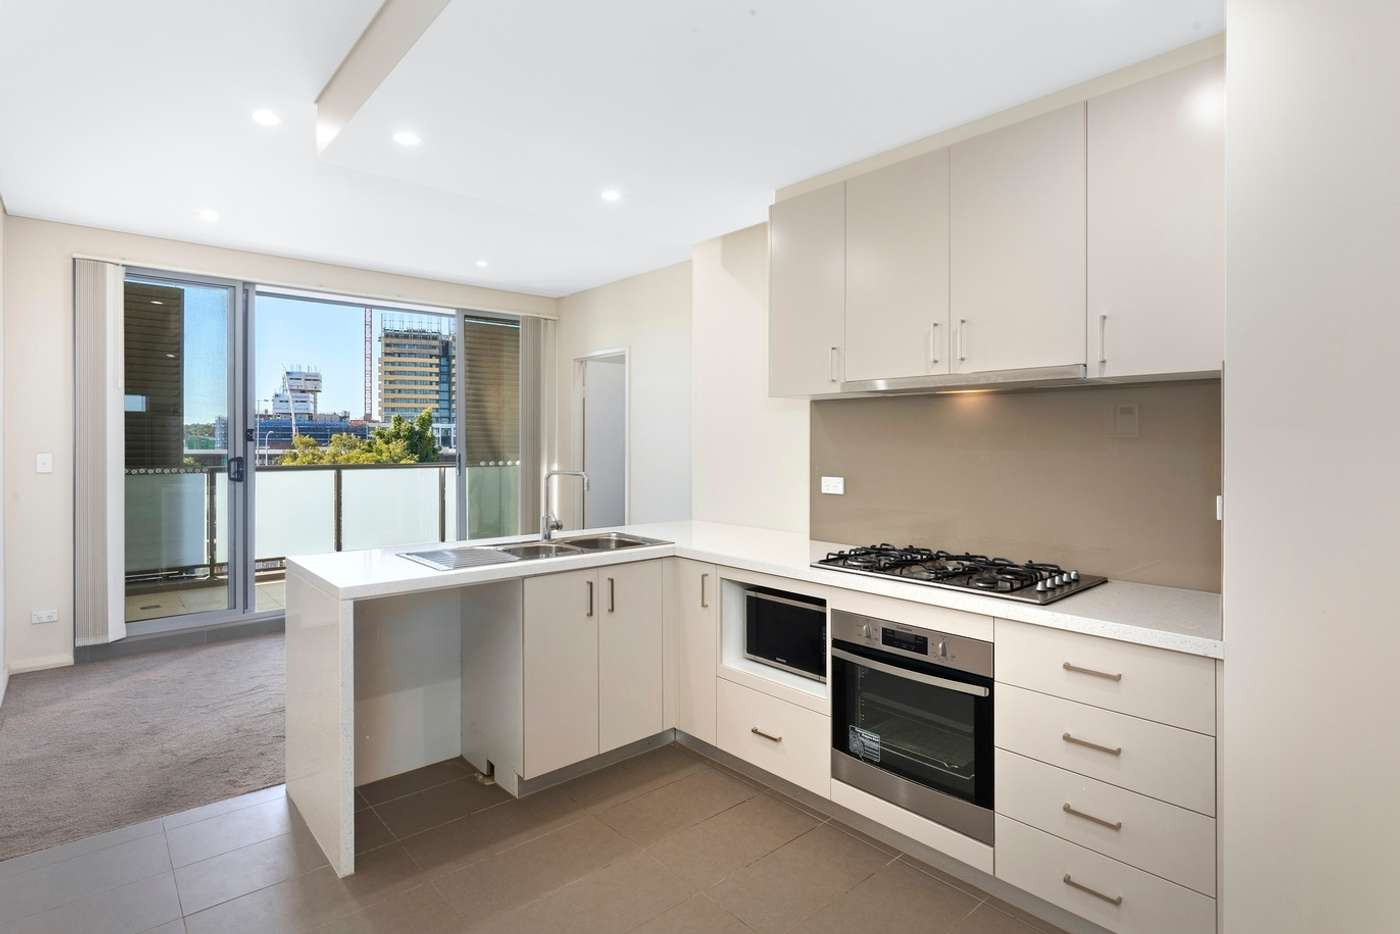 Main view of Homely apartment listing, 9/19-21 Enid Street, Granville NSW 2142